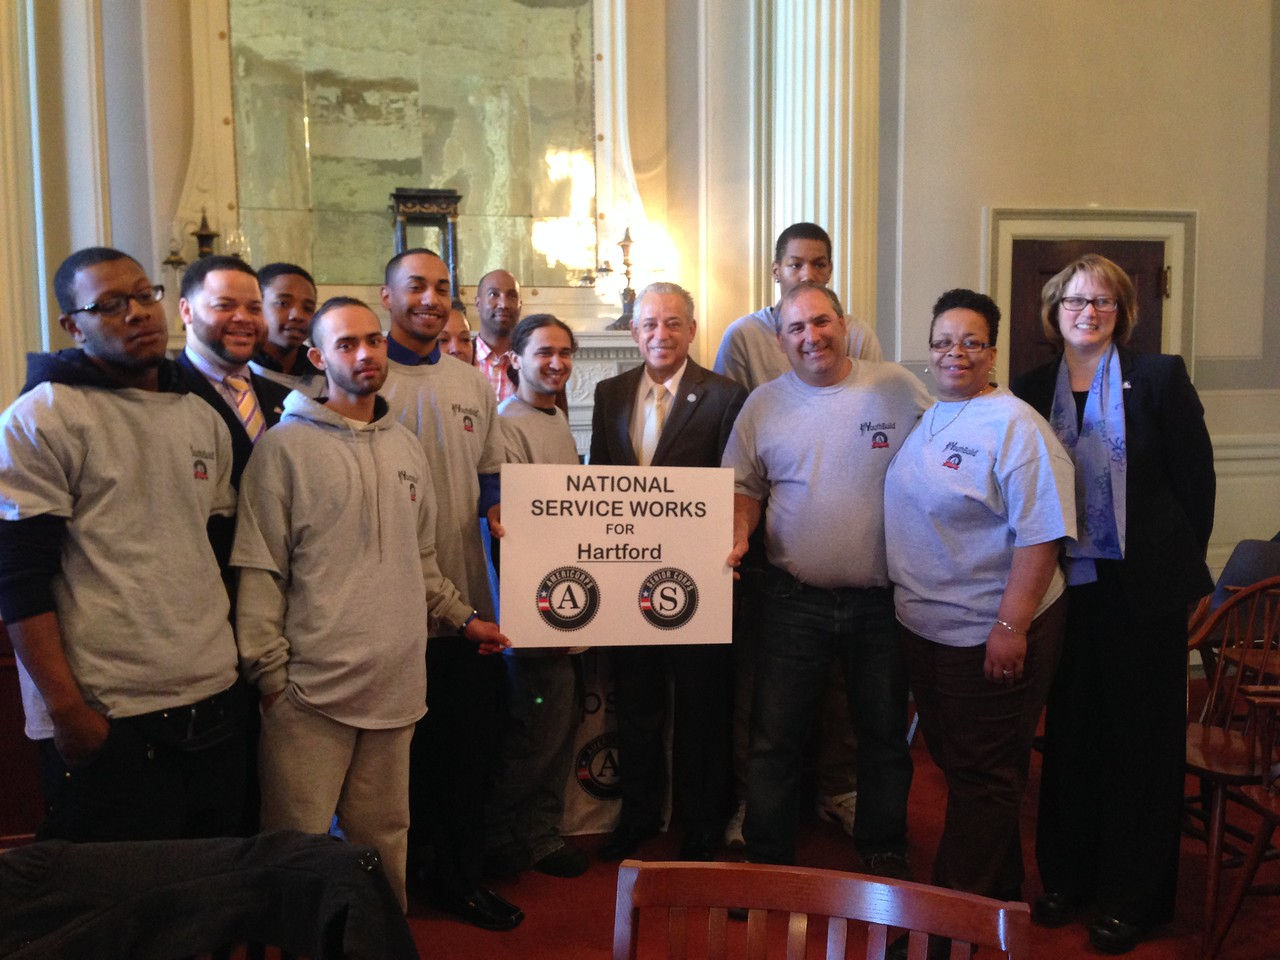 AmeriCorps members participating in Mayors Day of Recognition for National Service in Hartford, CT on April 1, 2014. Corporation for National and Community Service Photo.